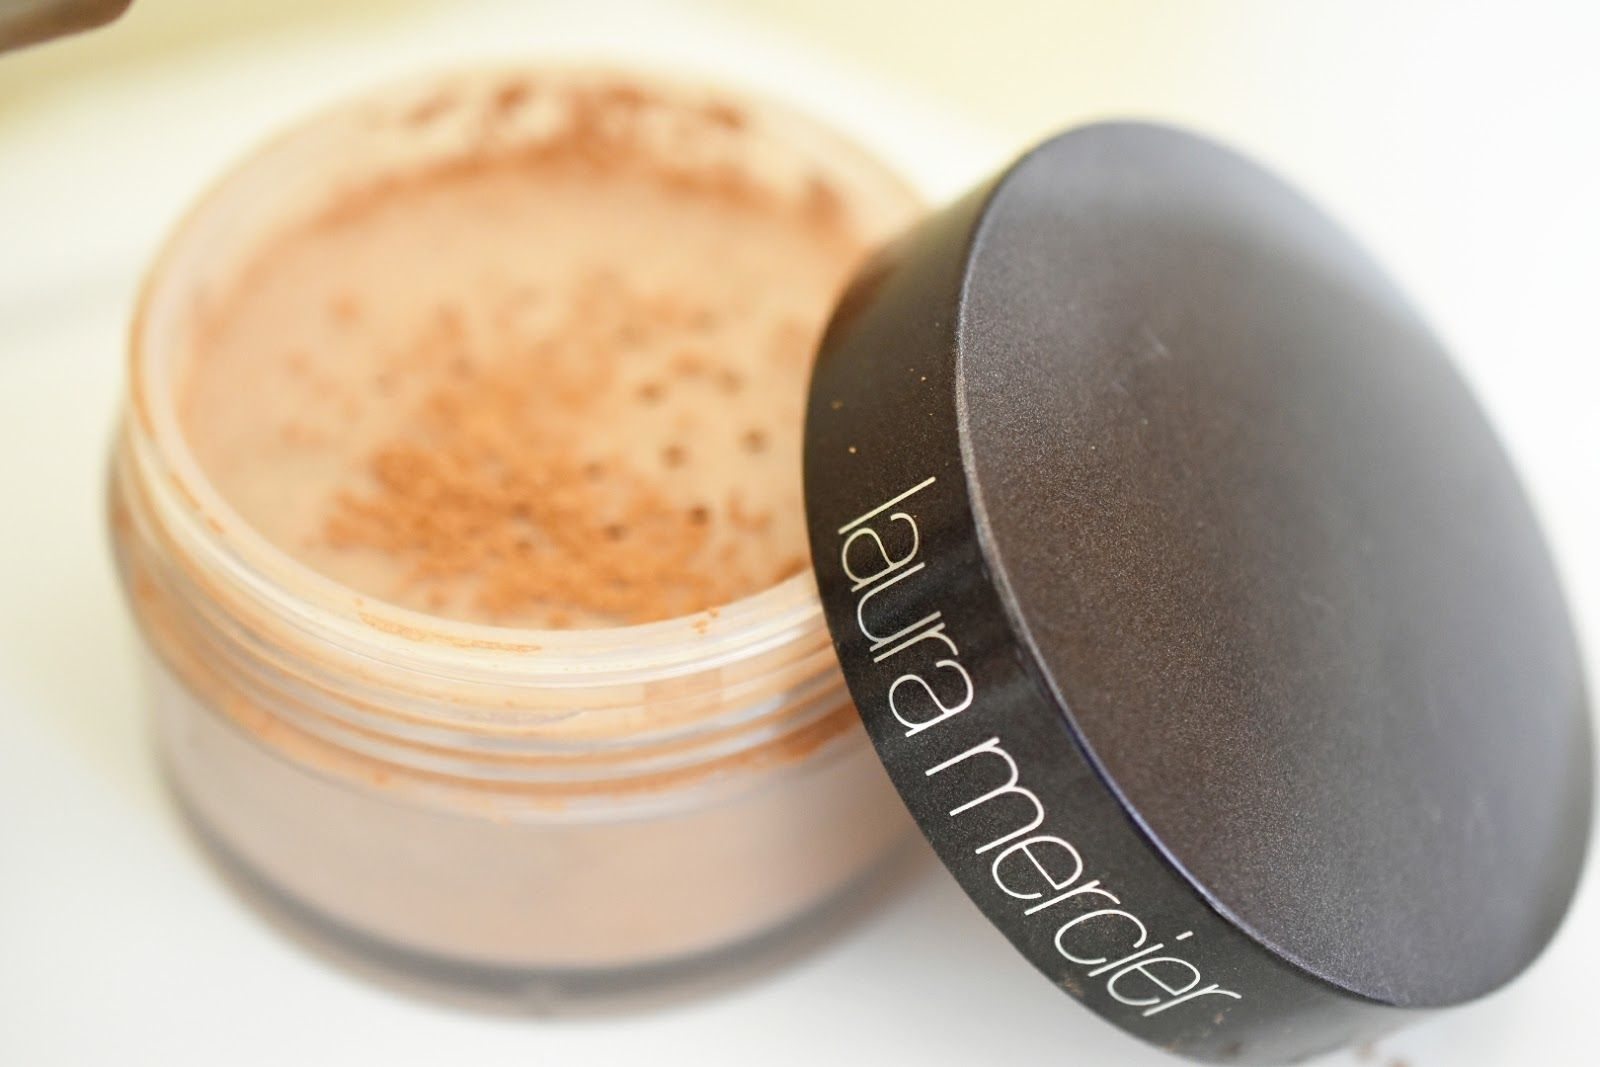 Laura Mercier Translucent Loose Setting Powder Review in